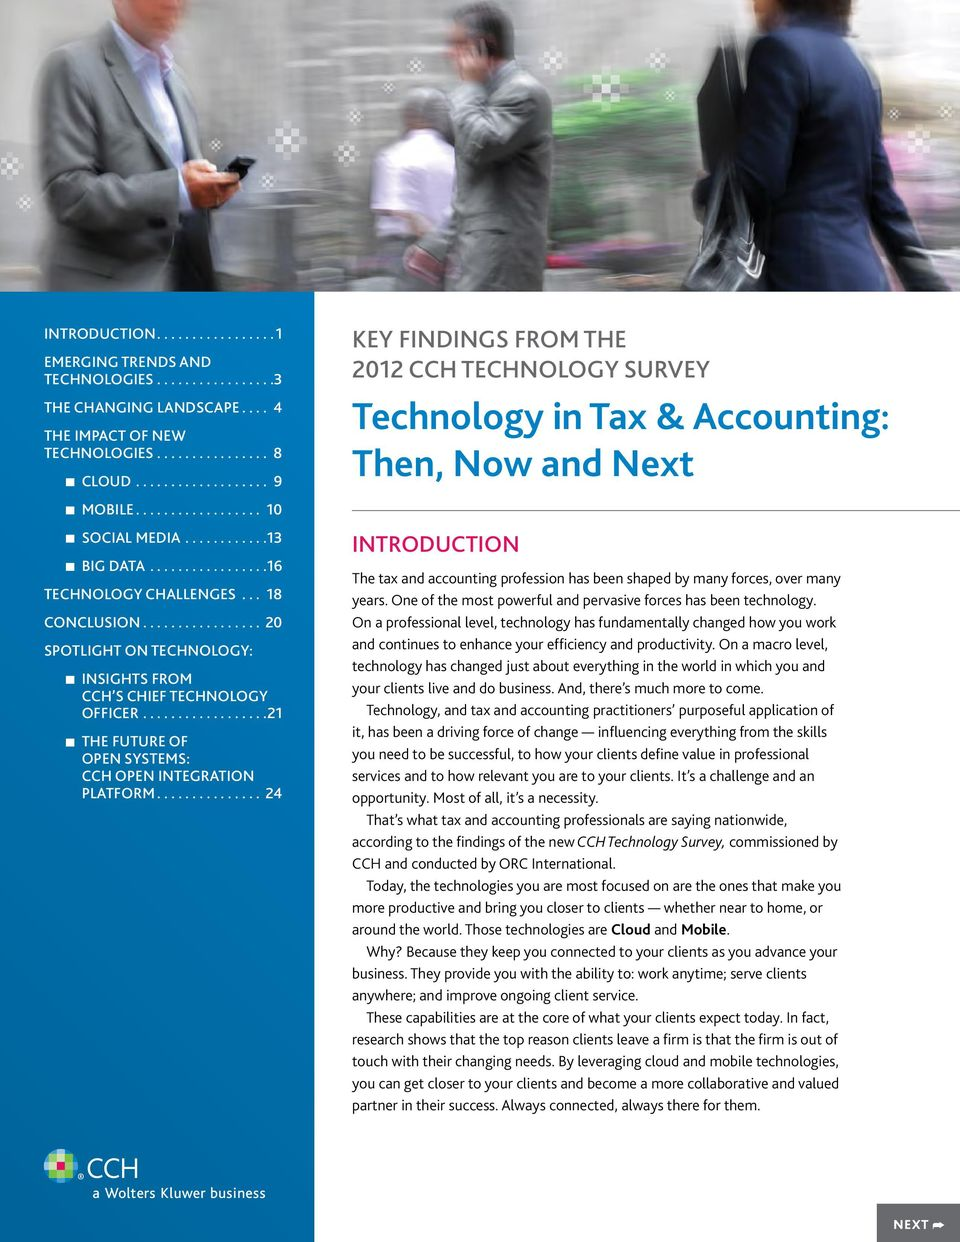 ... 24 Key Findings from the 2012 CCH Technology Survey Technology in Tax & Accounting: Then, Now and Next Introduction The tax and accounting profession has been shaped by many forces, over many years.